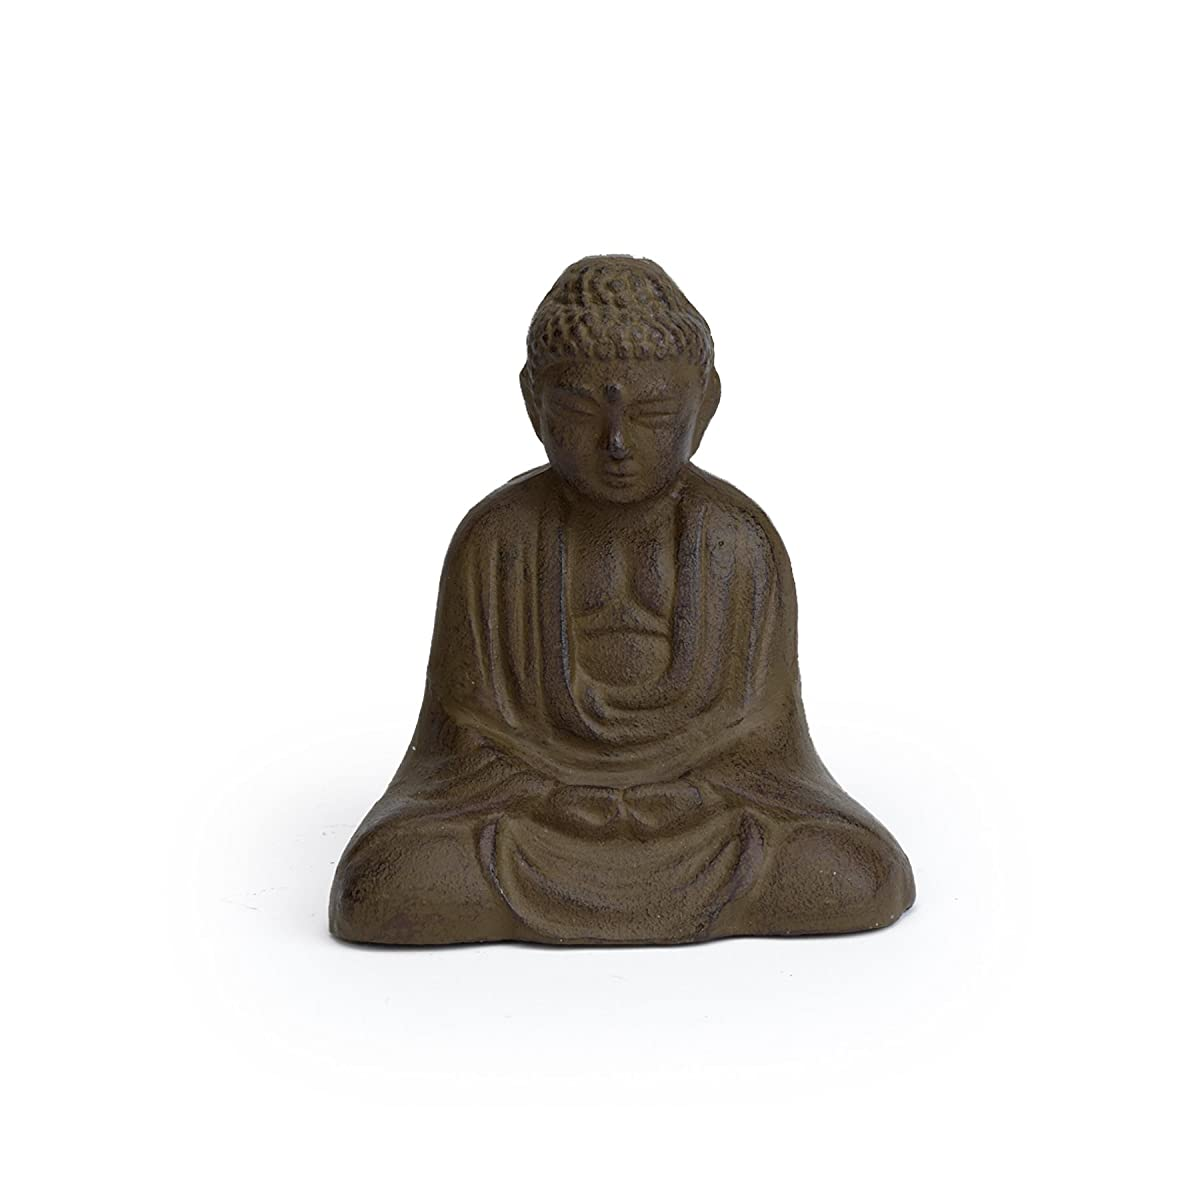 Abbott Collection Cast Iron Sitting Buddha Garden Sculpture, Brown